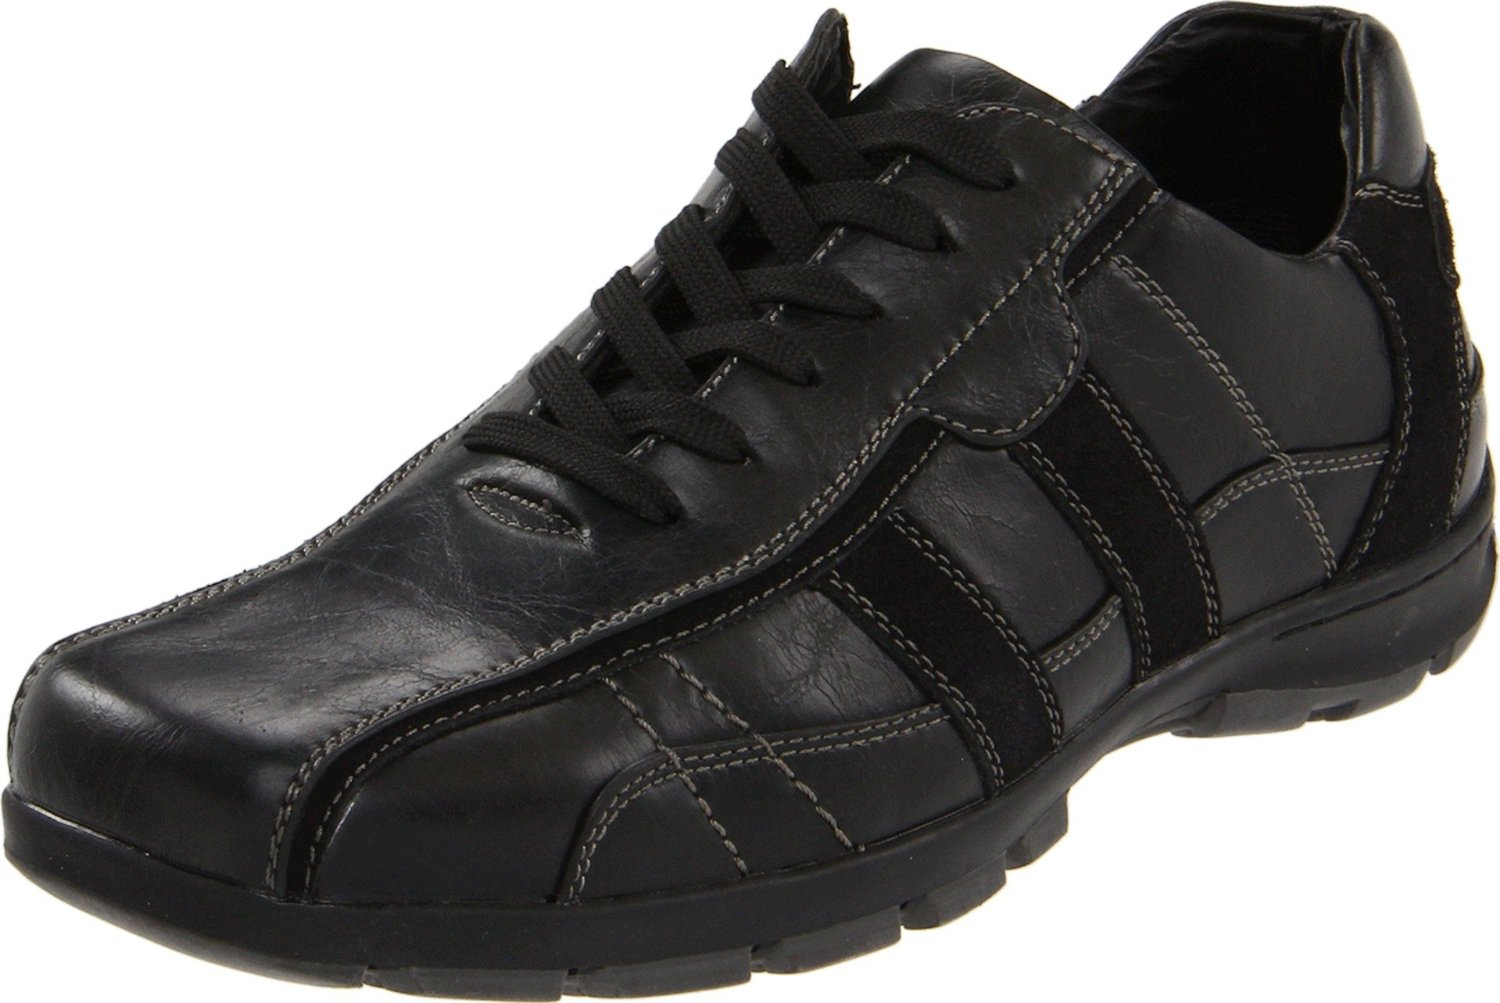 GBX-Radikal-G-Mens-Casual-Oxford-Shoes-New